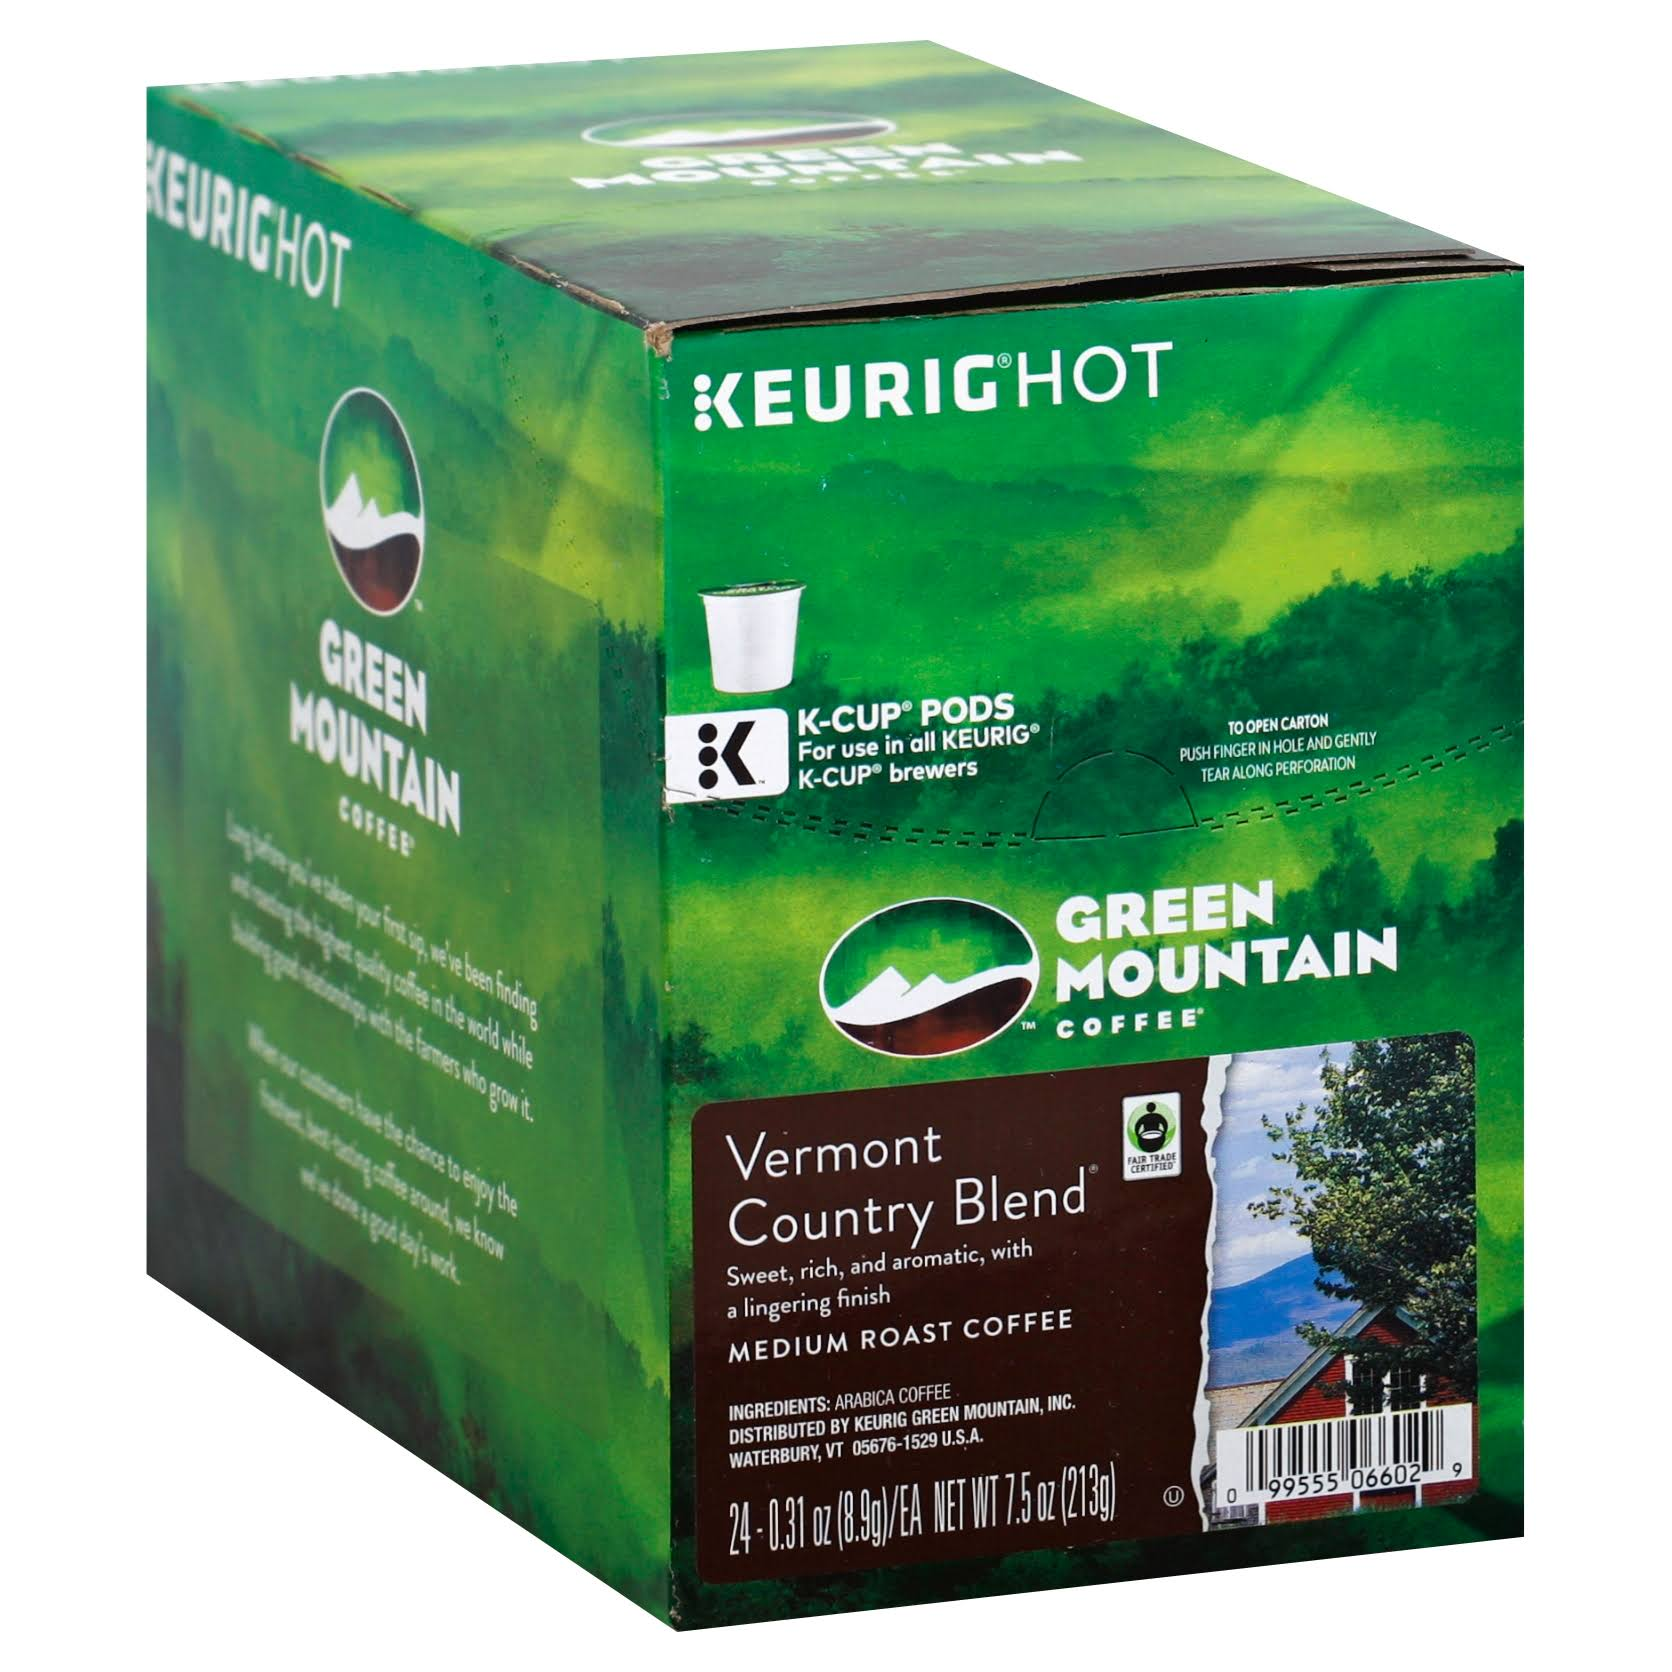 Green Mountain GMT6602 Coffee K-cups - Vermont Country Blend, 24ct